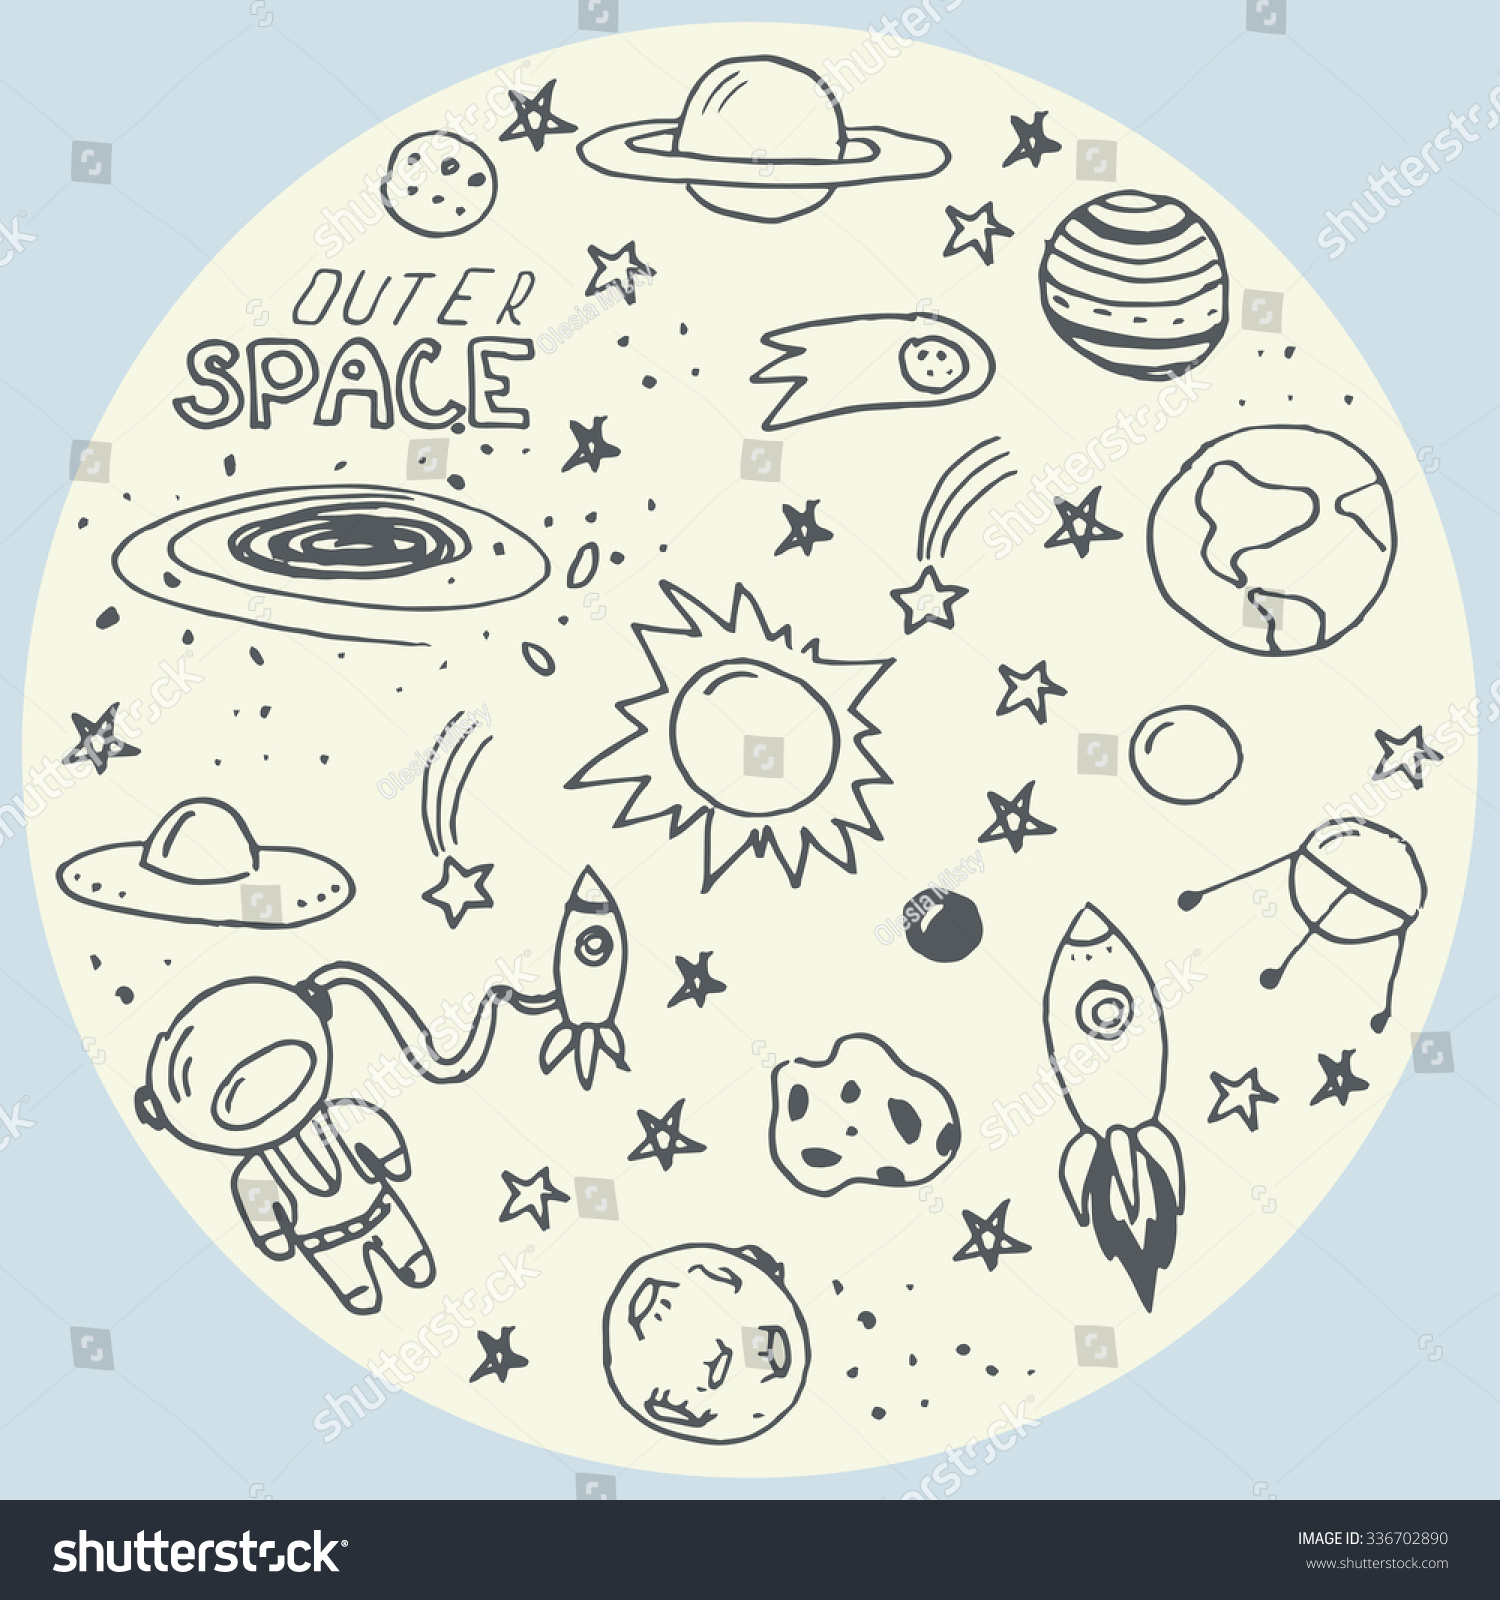 astronomy doodles - photo #28